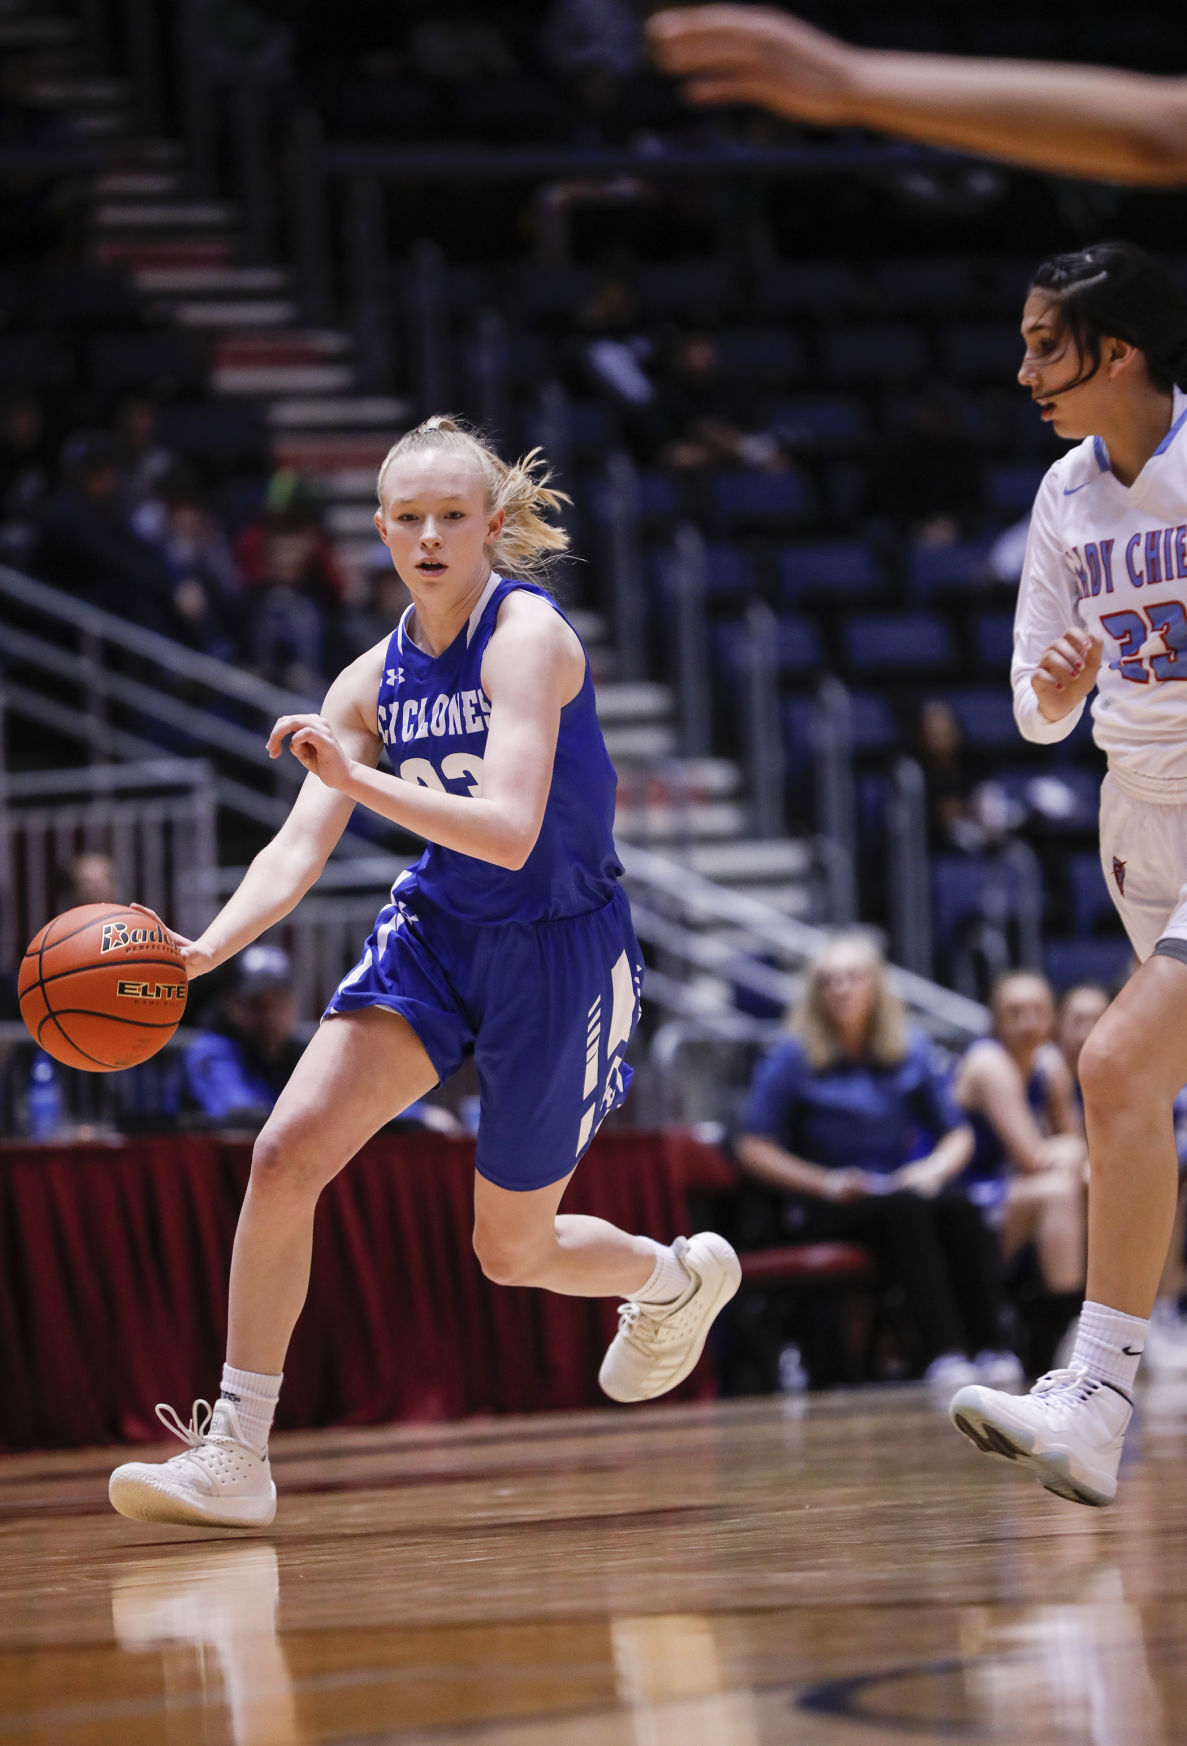 Wyoming Indian Vs Southeast 2A Girls